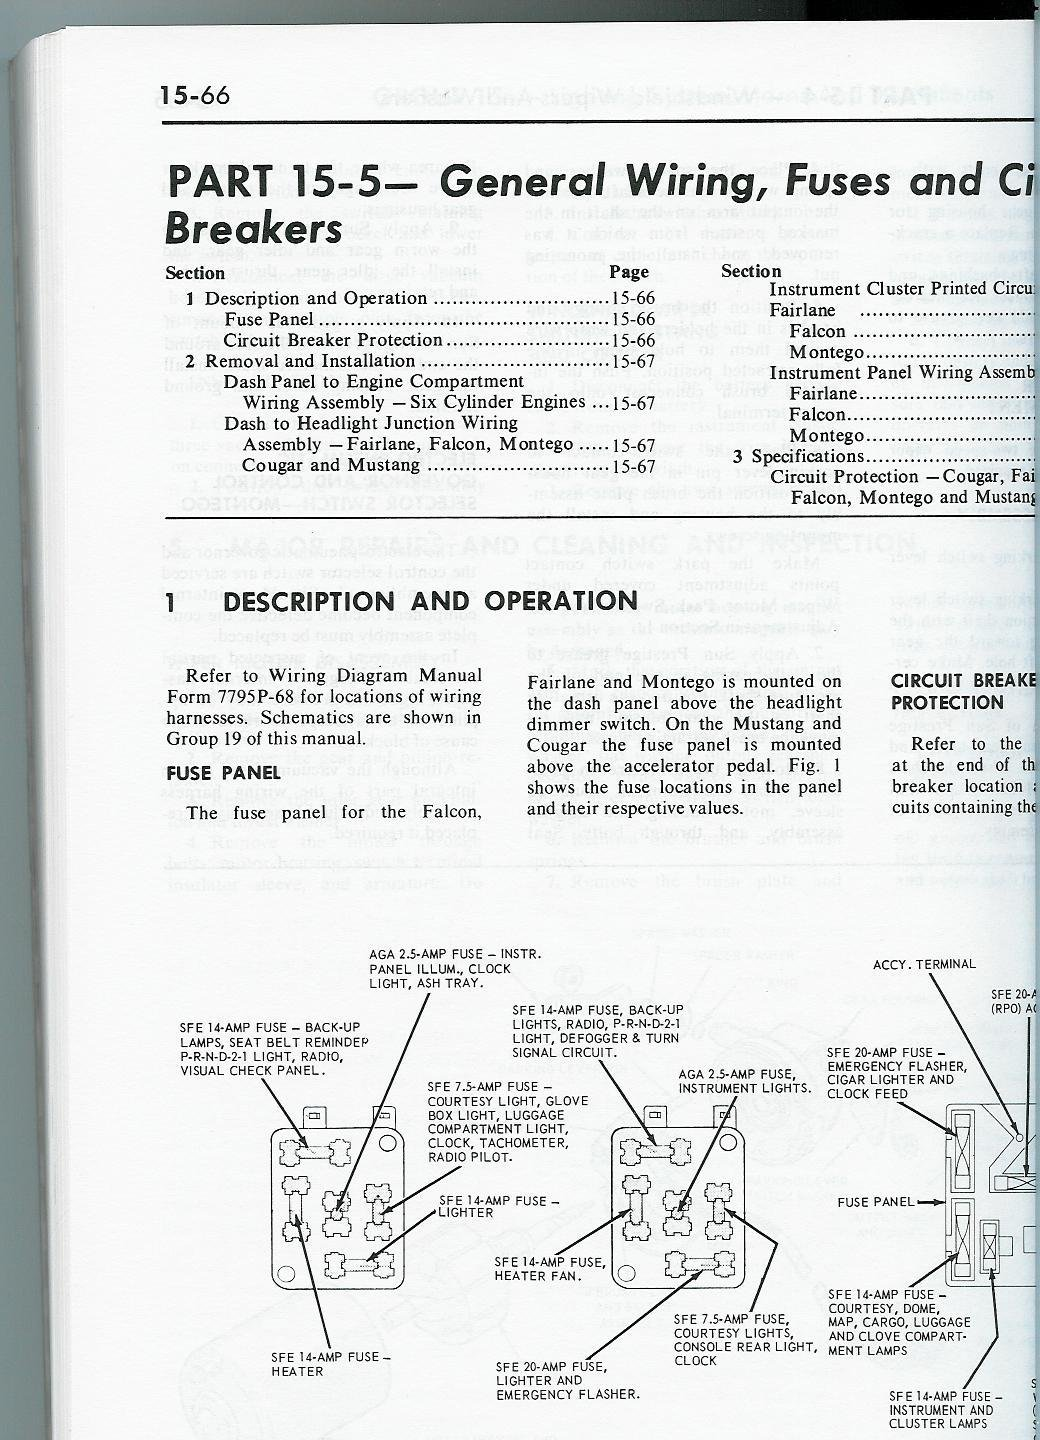 1969 Mustang Fastback Fuse Box Diagram 2005 Ford Focus Stereo Wiring Diagram For Wiring Diagram Schematics